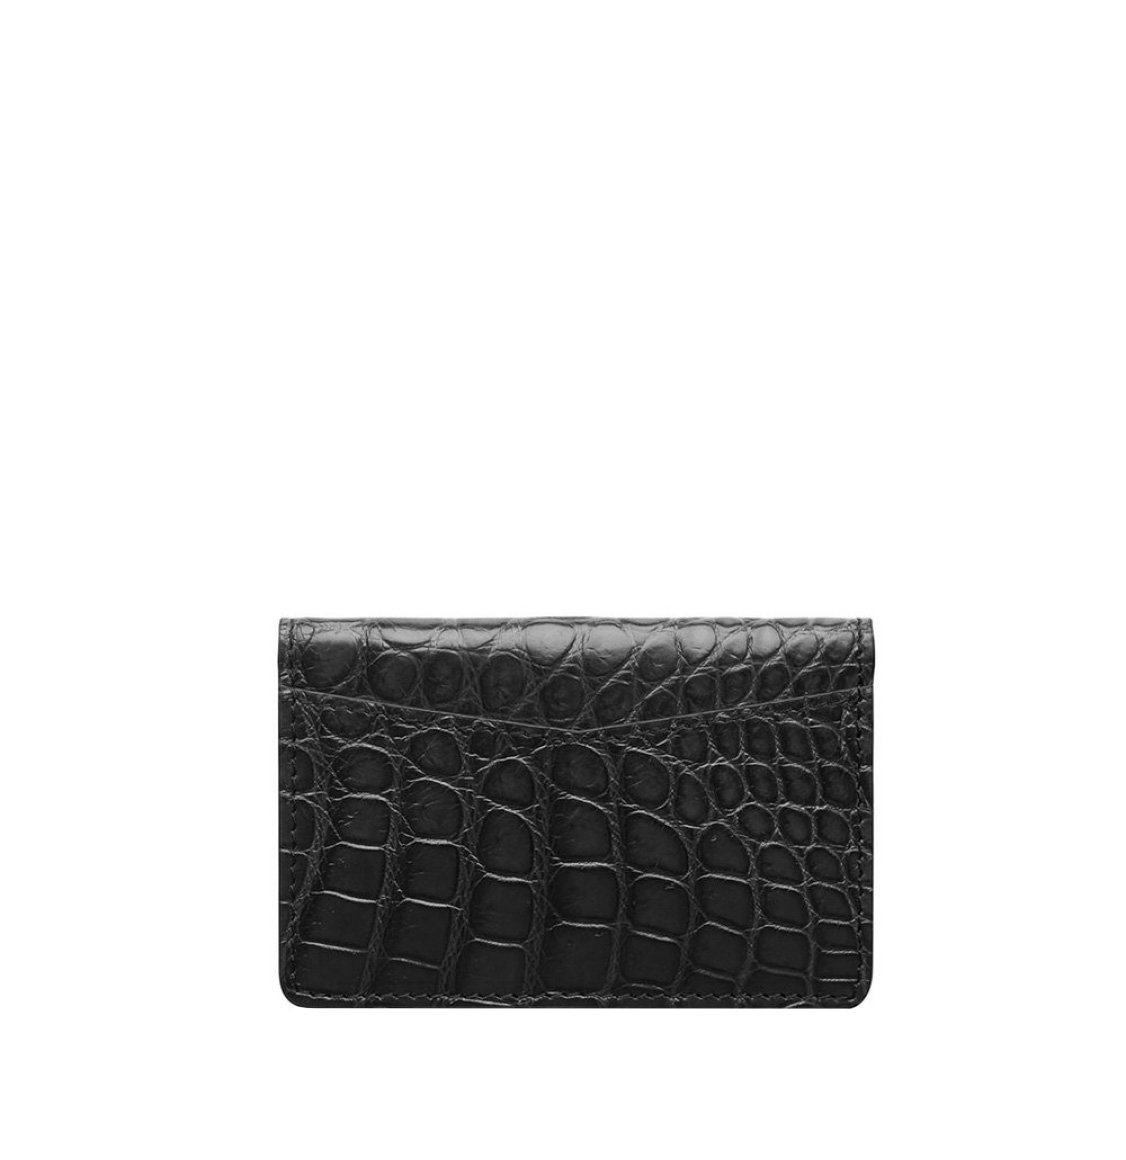 The Project Garments Cardholder in Black Alligator Leather